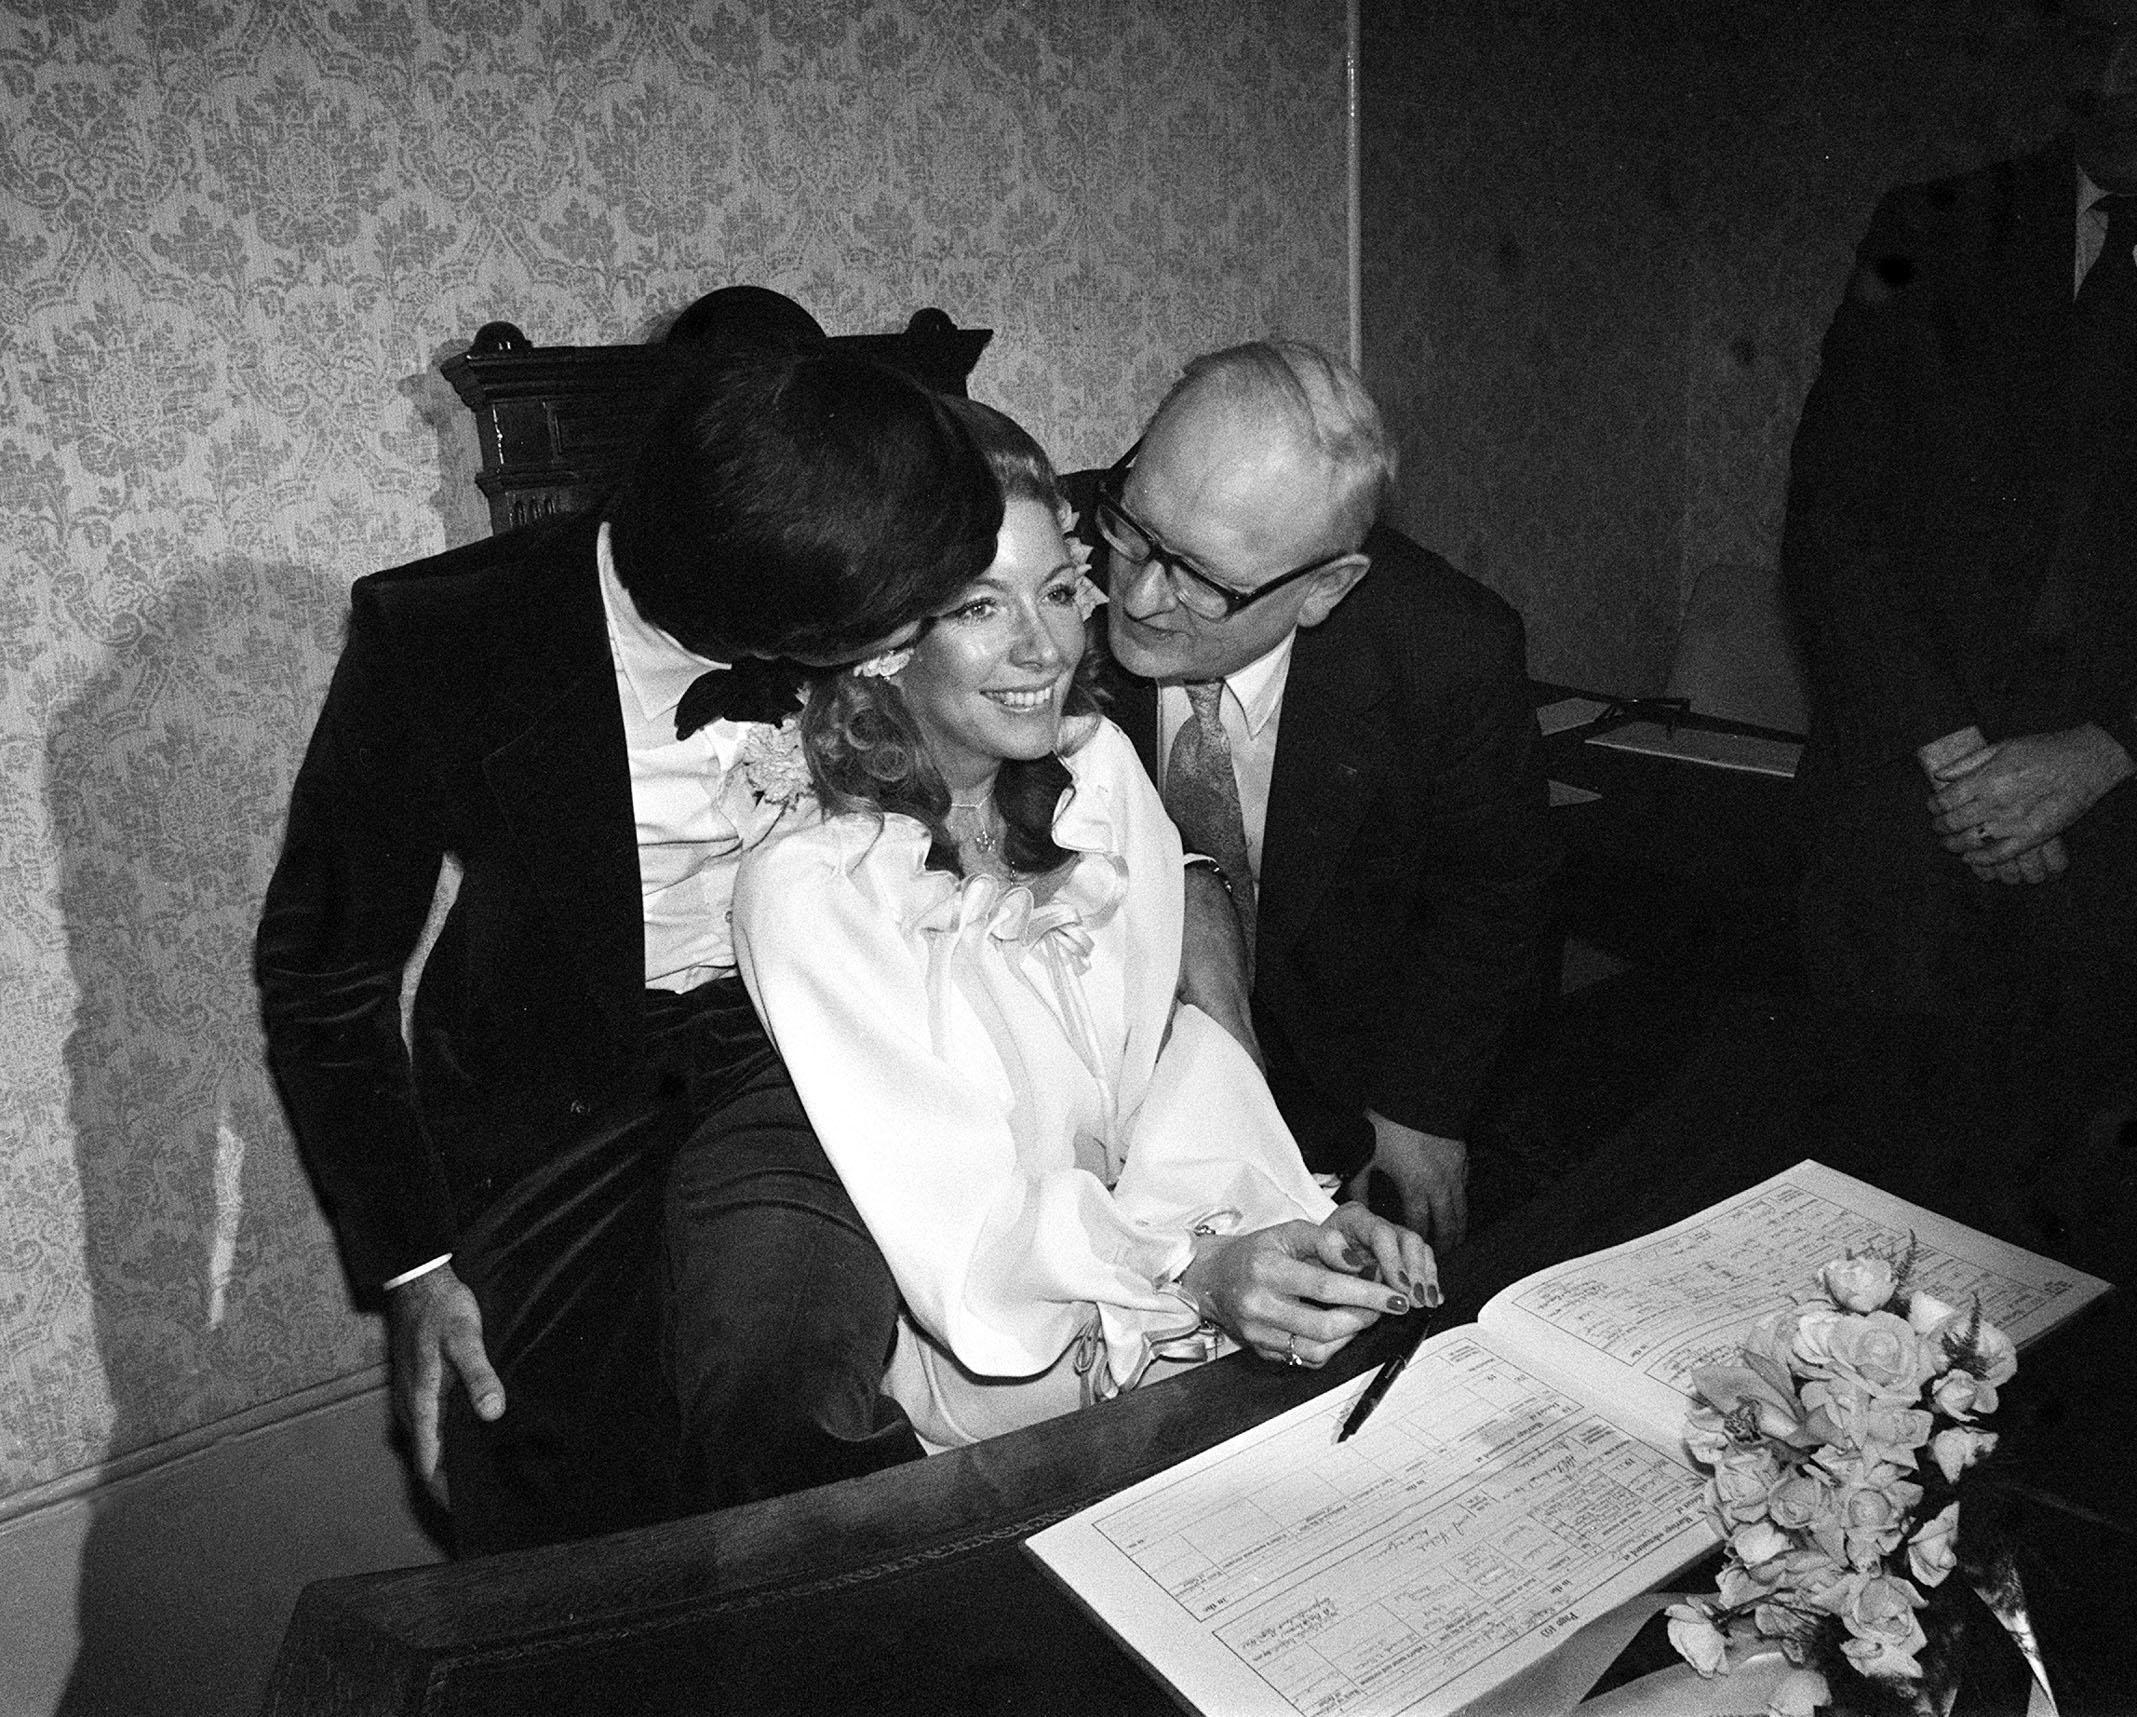 30/12/1977: Mr Robert Claiborne-Dixon and the former Miss Regina Dangerfield after they became the last couple to wed at Caxton Hall, Westminster register office, which is closing after 44 years of cheers, rice, confetti and romance. The man kissing the bride is Superintendent Registrar Mr Donald Boreham, who wed them.